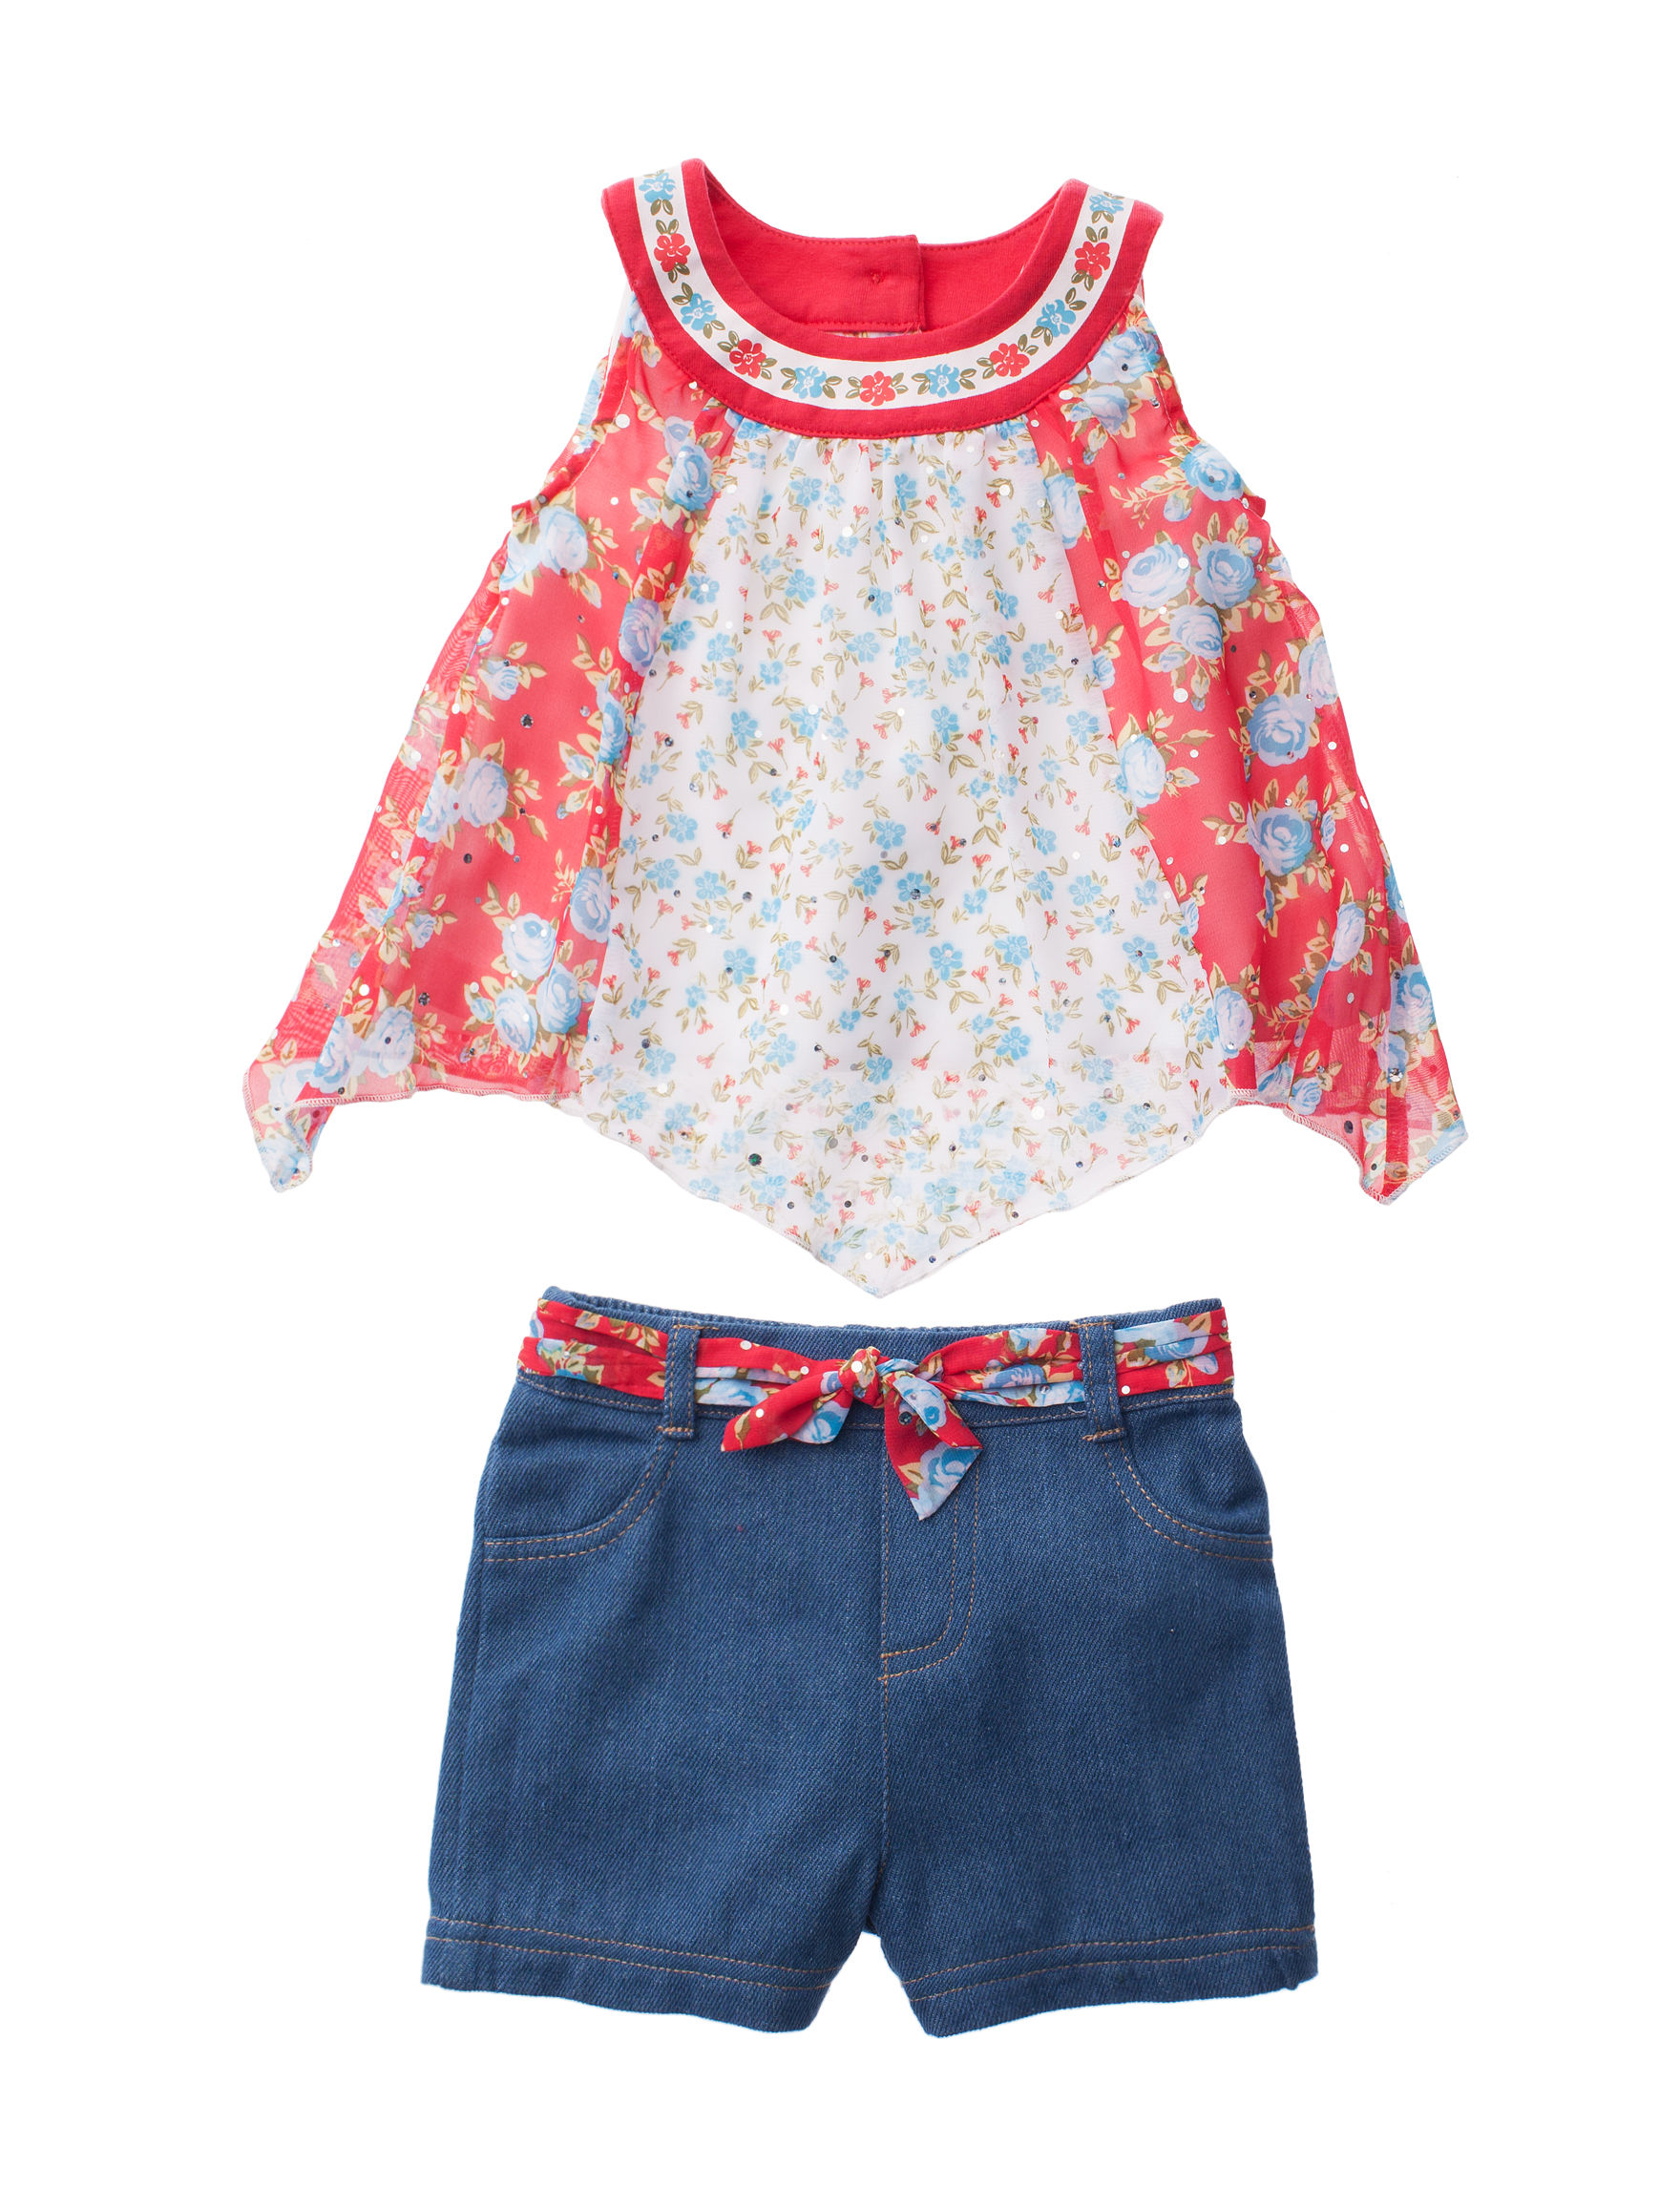 Little Lass Red Floral